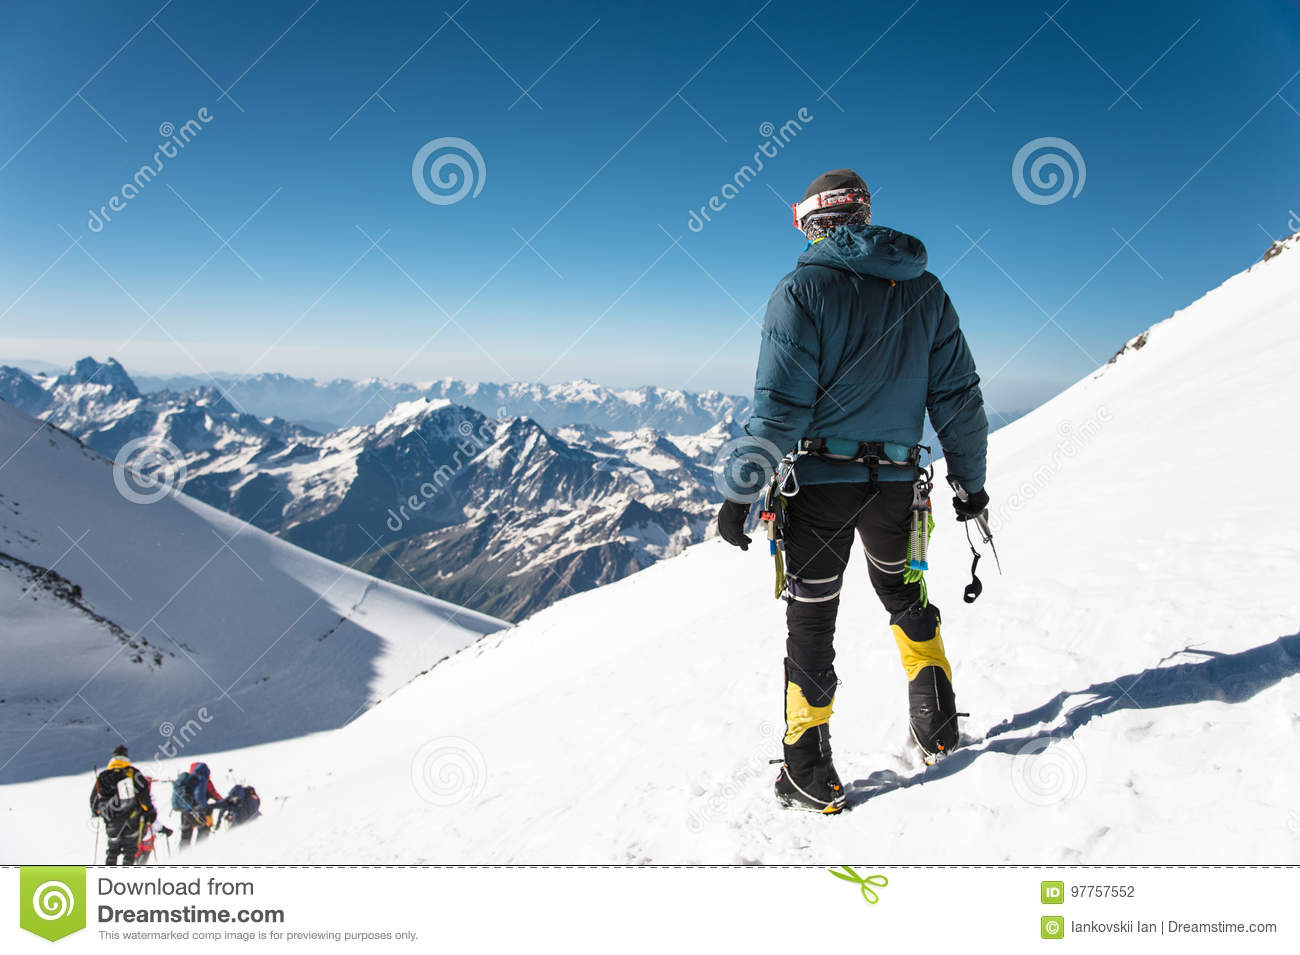 berufsf hrer bergsteiger auf dem schneebedeckten gipfel elbrus des schlafenvulkans stockfoto. Black Bedroom Furniture Sets. Home Design Ideas